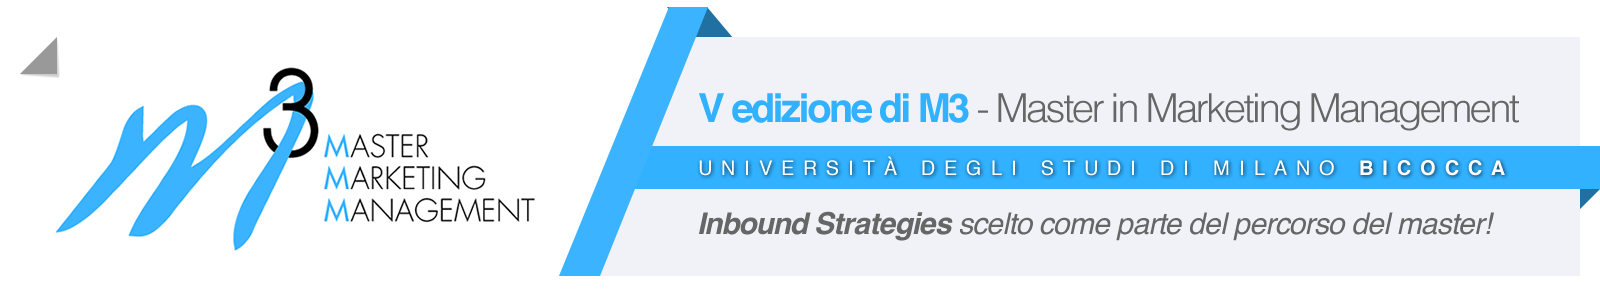 http://edizione2017.inboundstrategies.it/wp-content/uploads/2015/12/m3.png